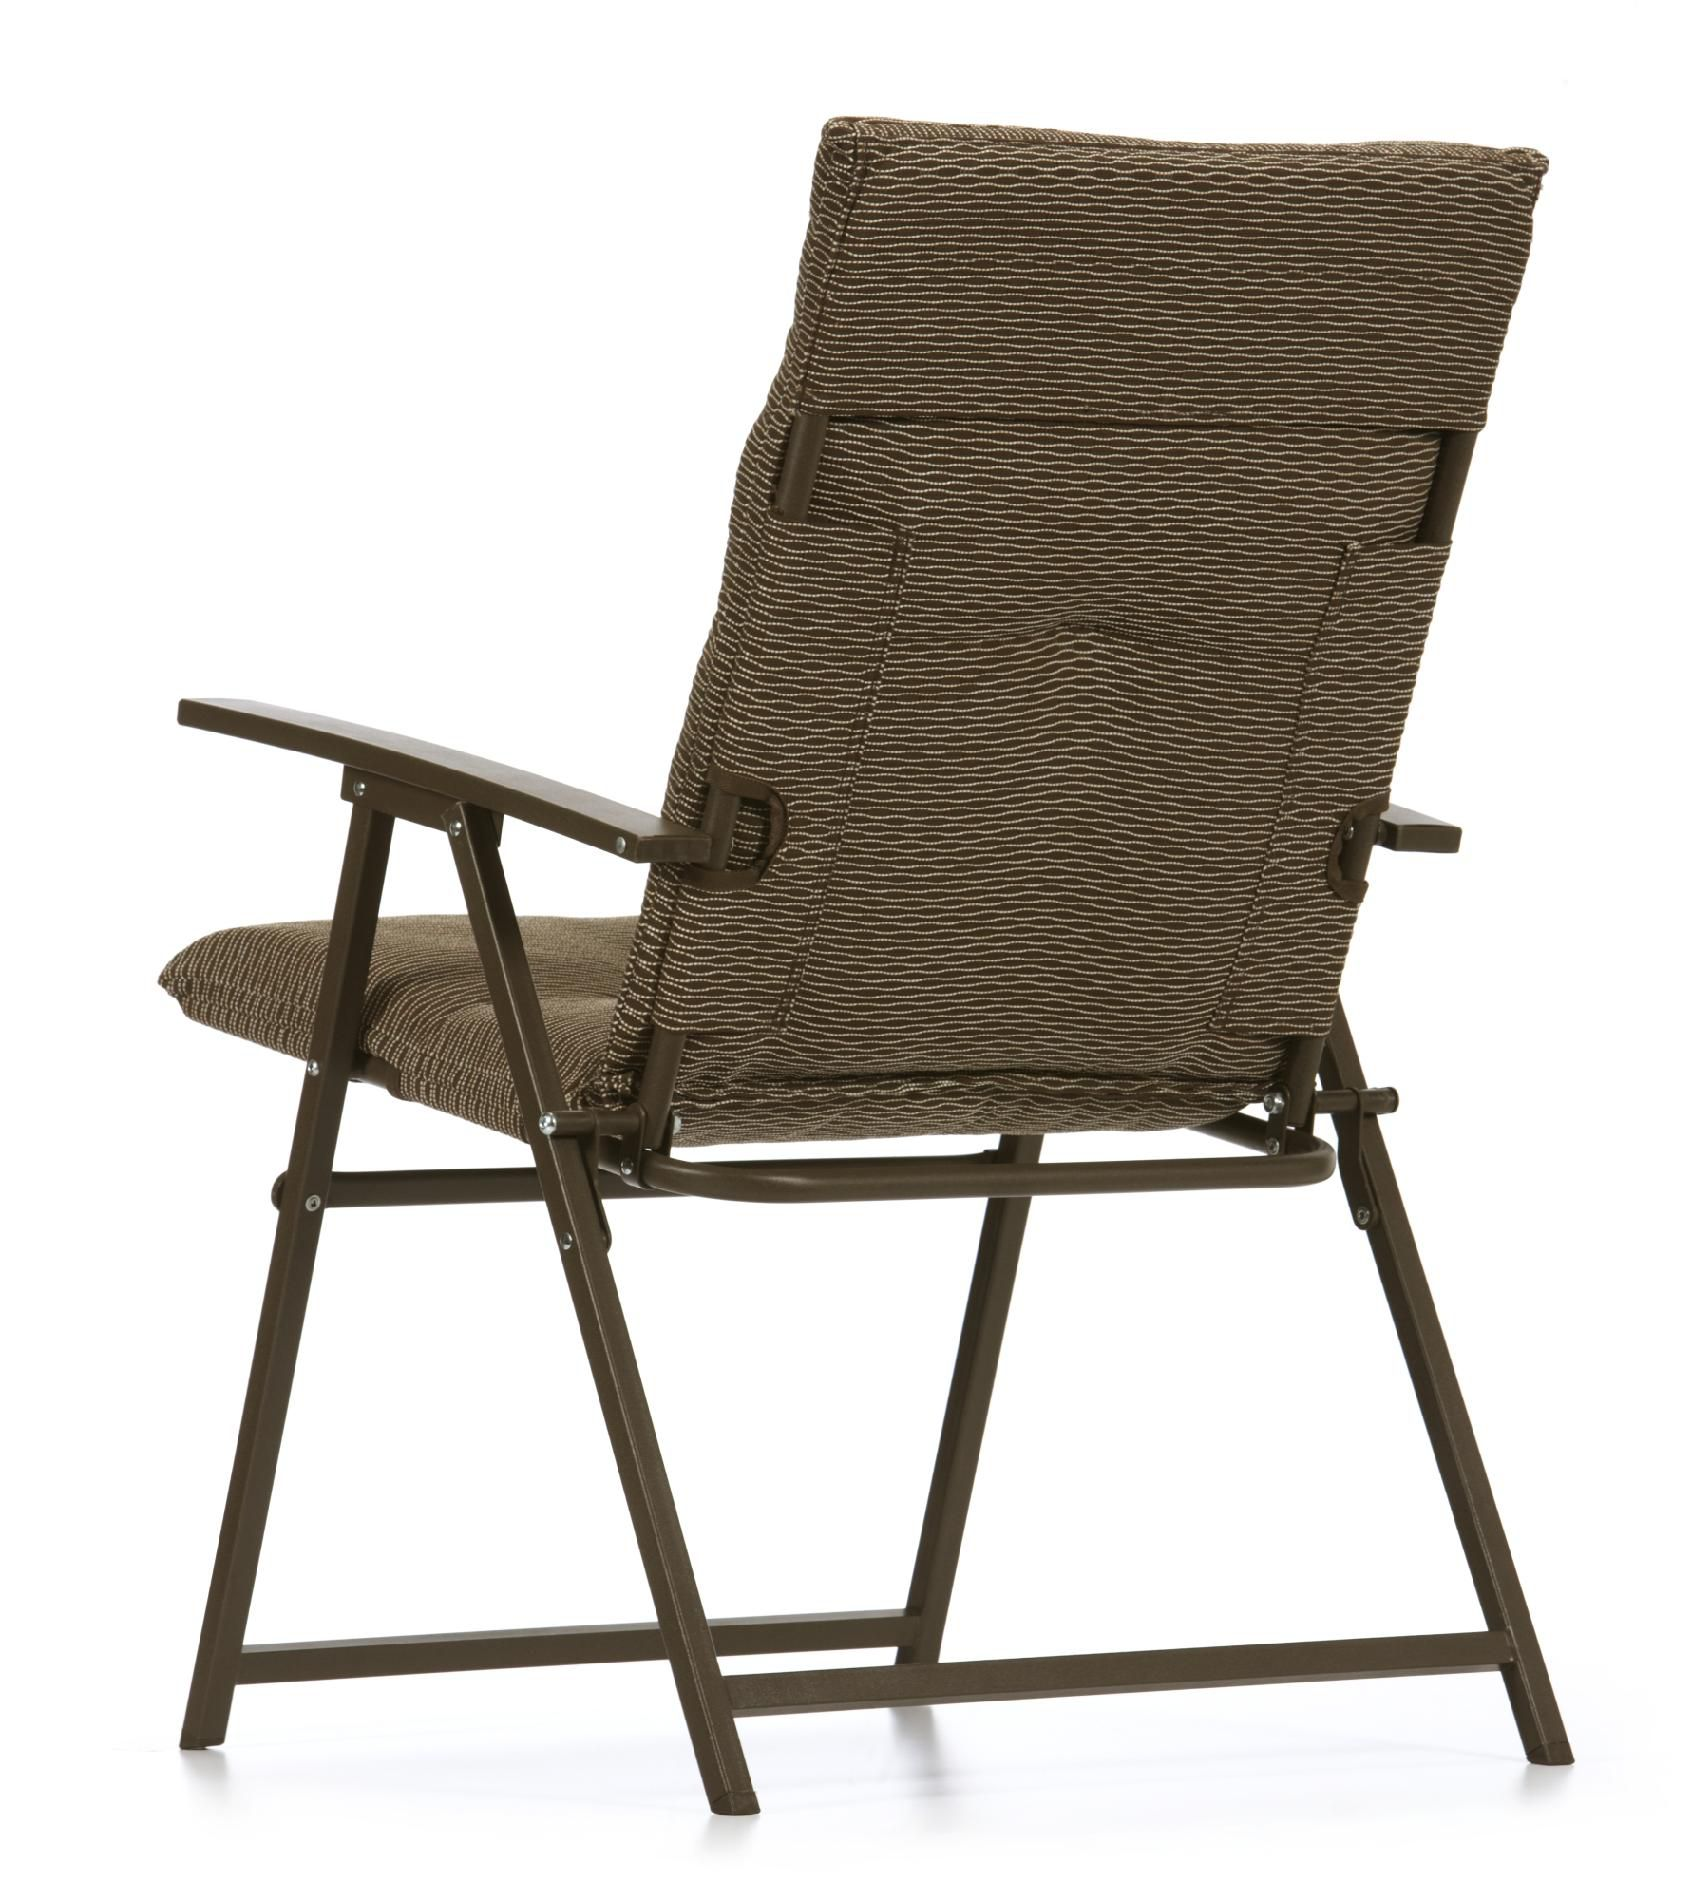 Picnic Chairs Brief Overview About The Folding Patio Chairs